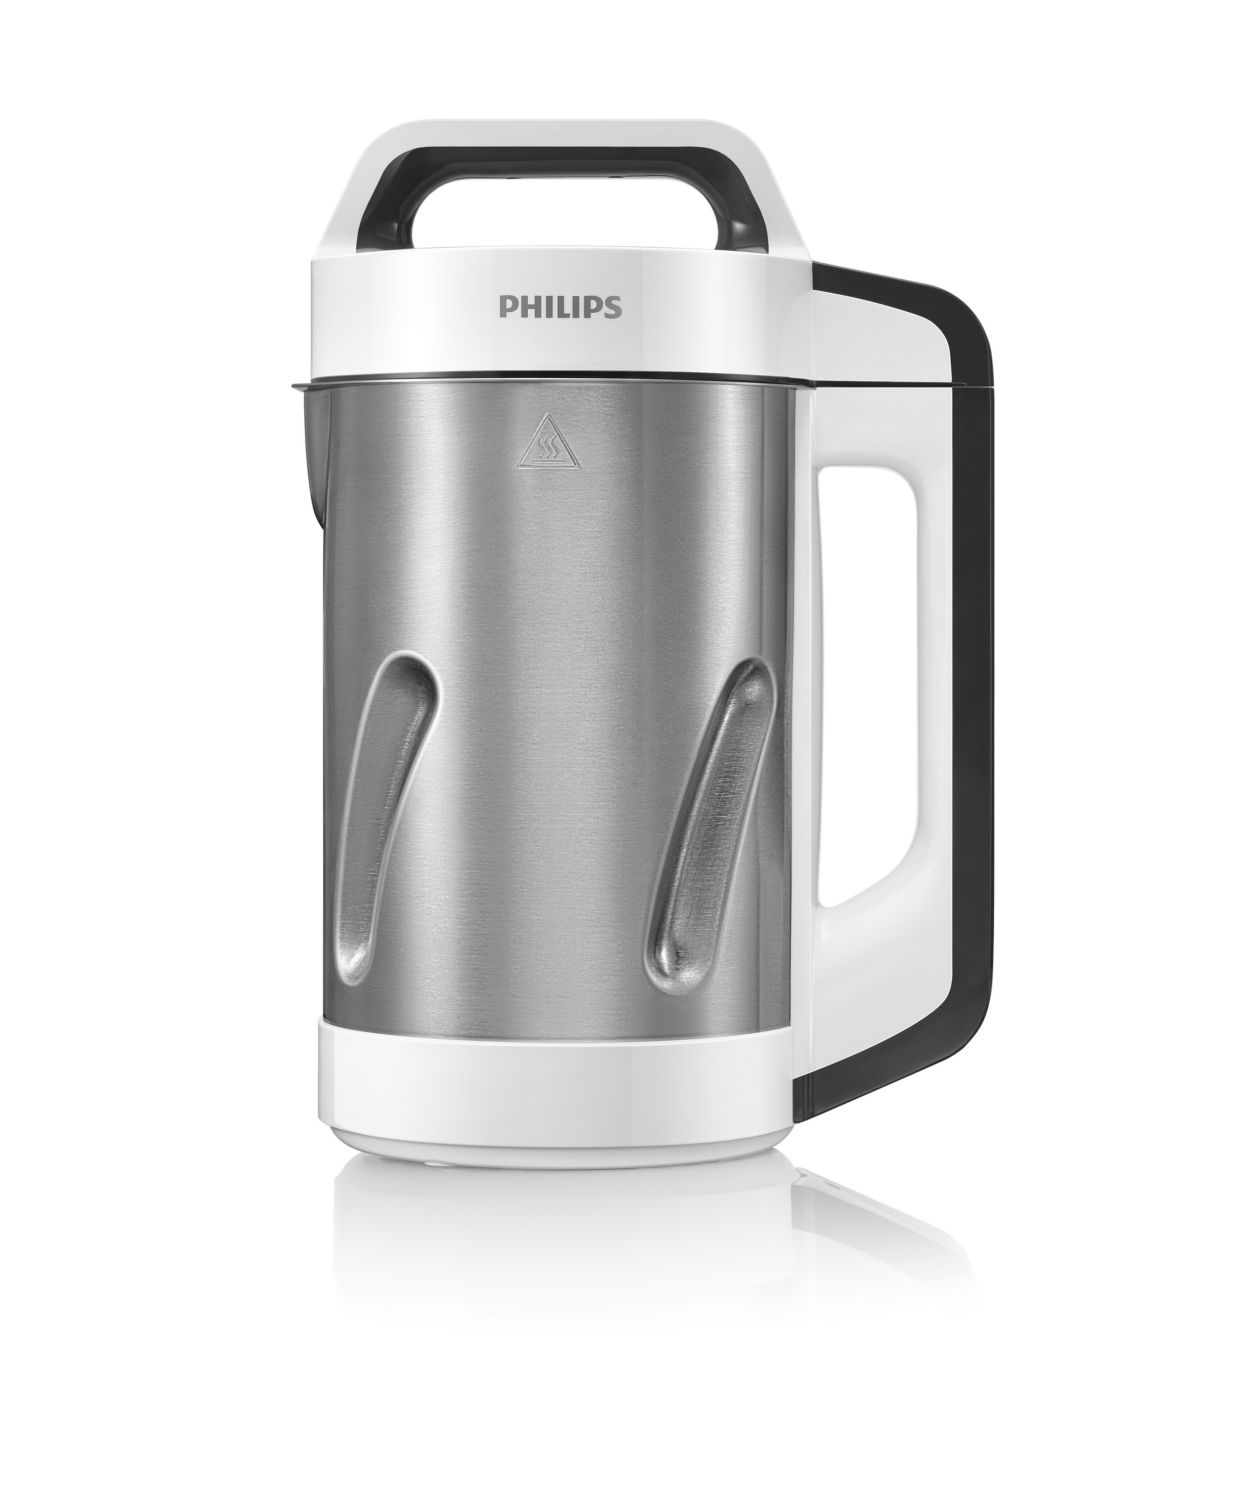 Uncategorized Philips Kitchen Appliances India grills steamers toasters more philips cooking soup maker